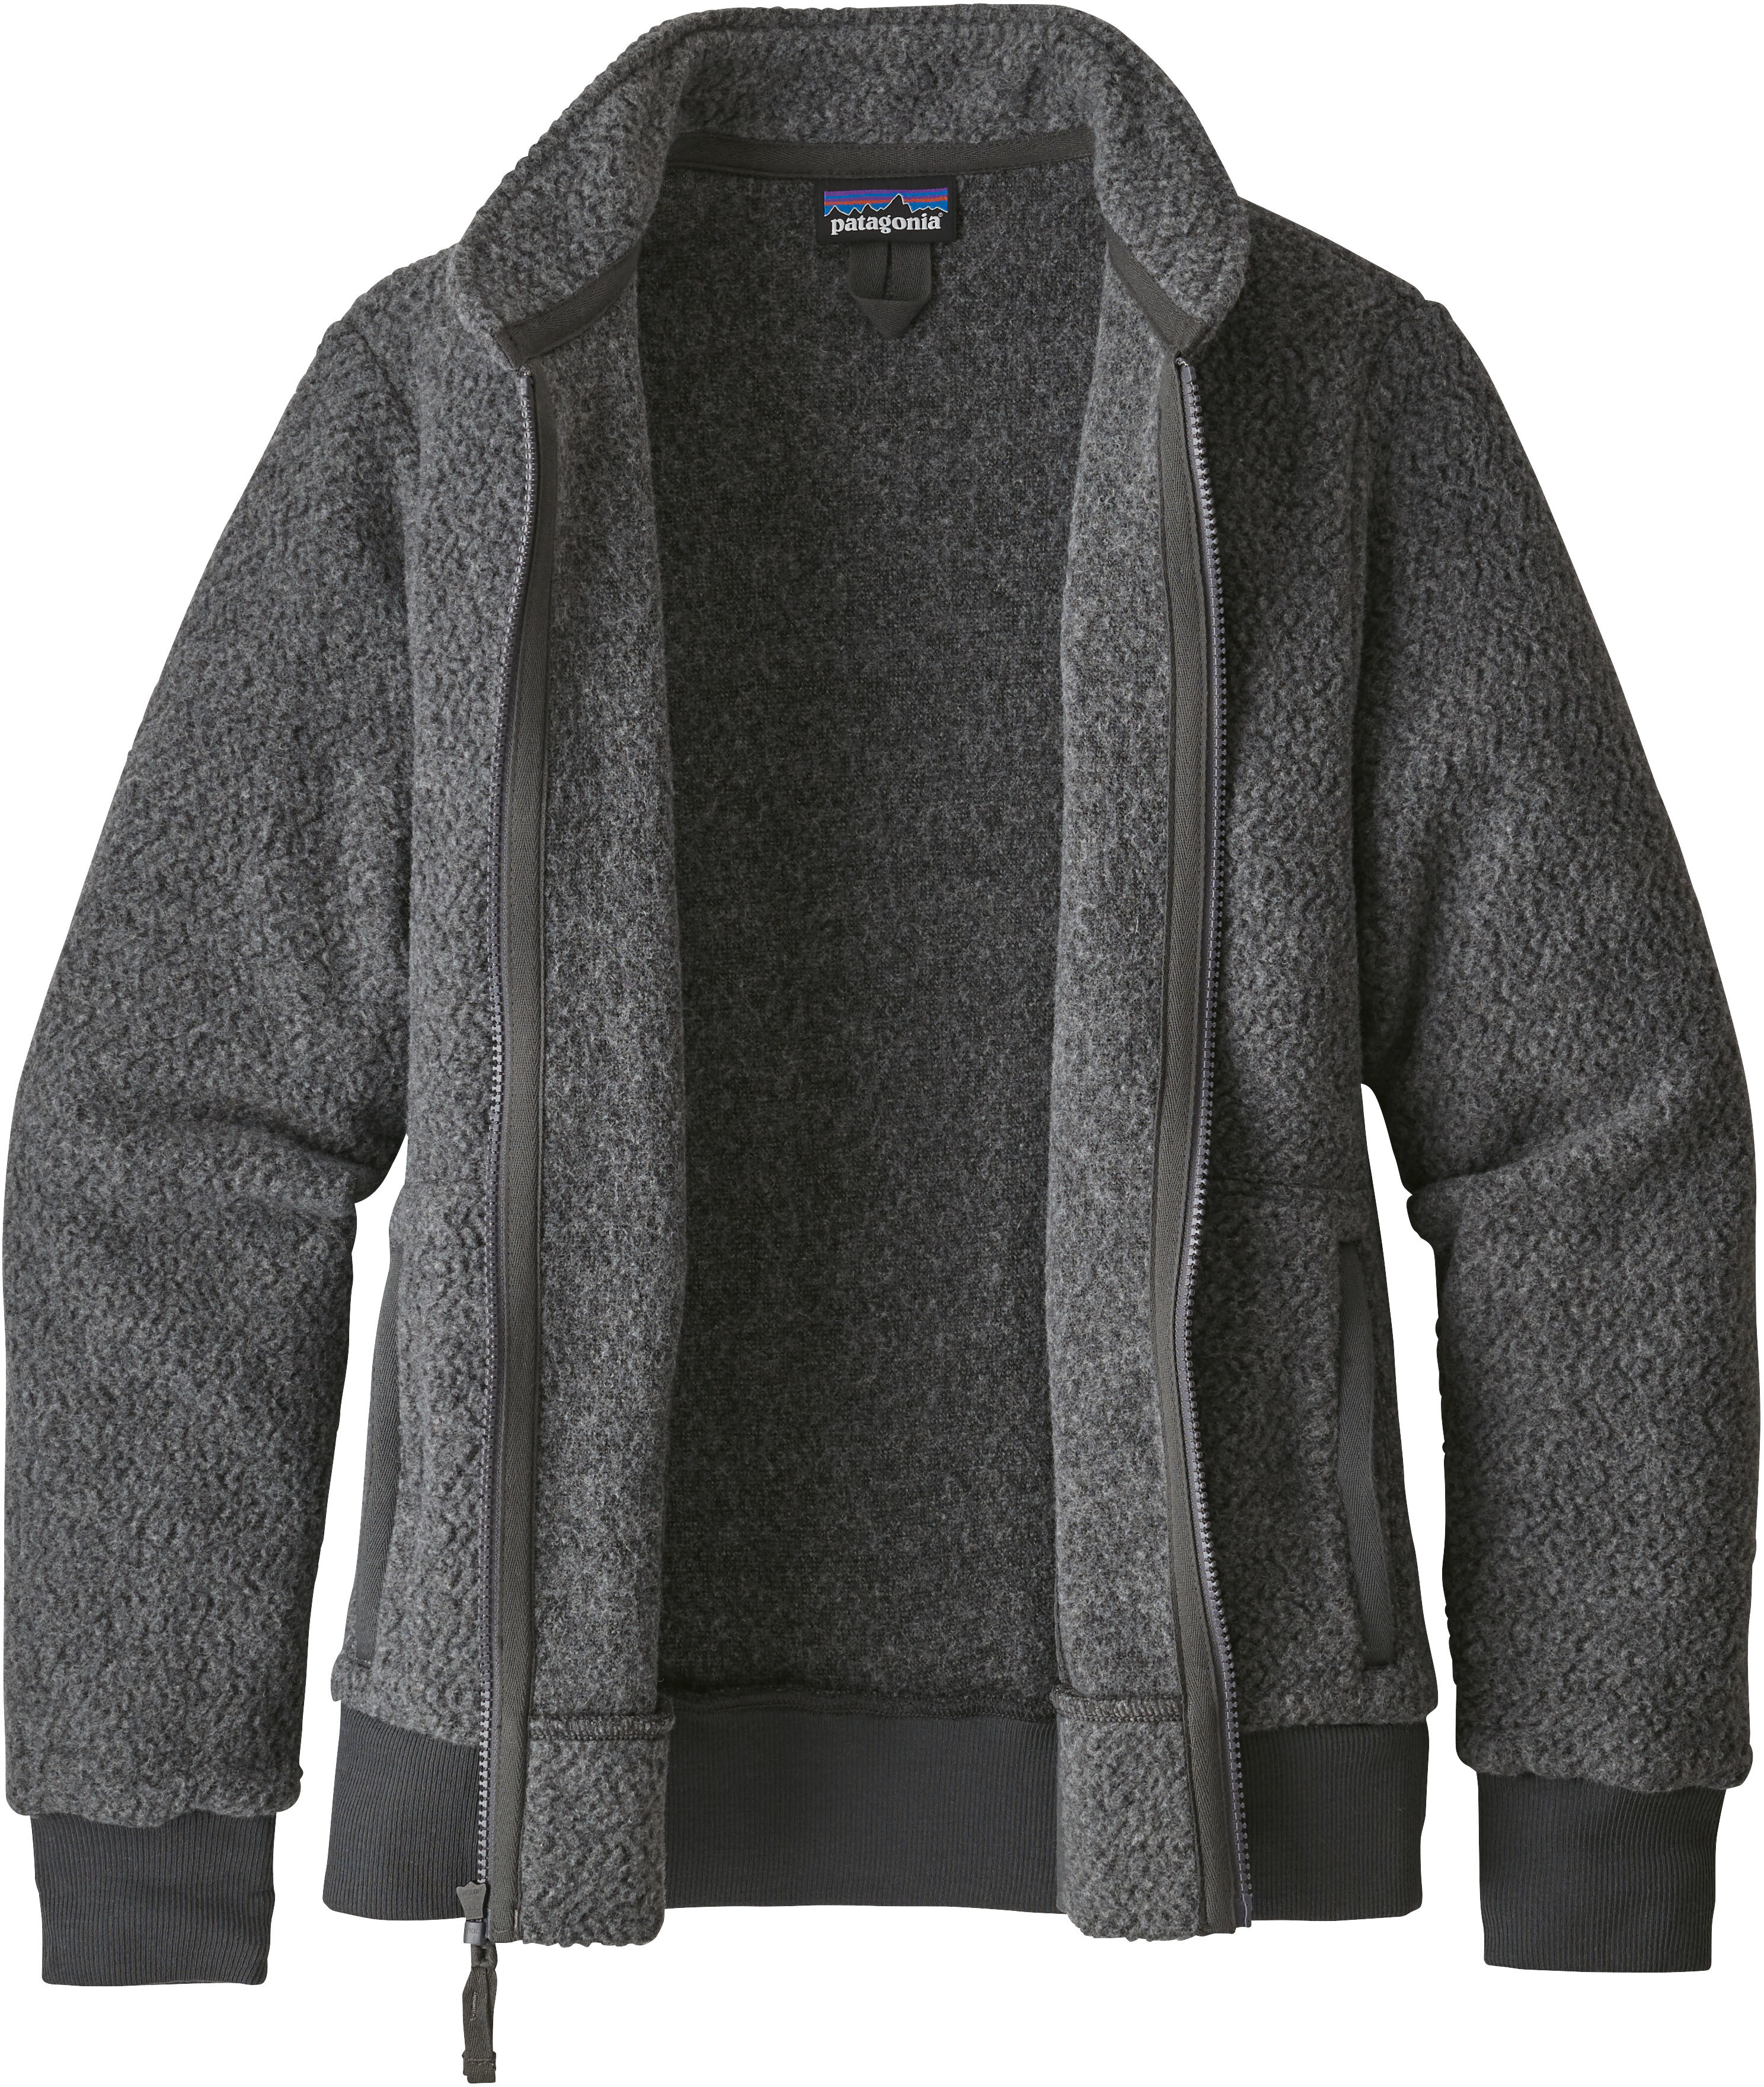 822411a0adc72 Patagonia Woolyester Fleece Jacket Dam forge grey